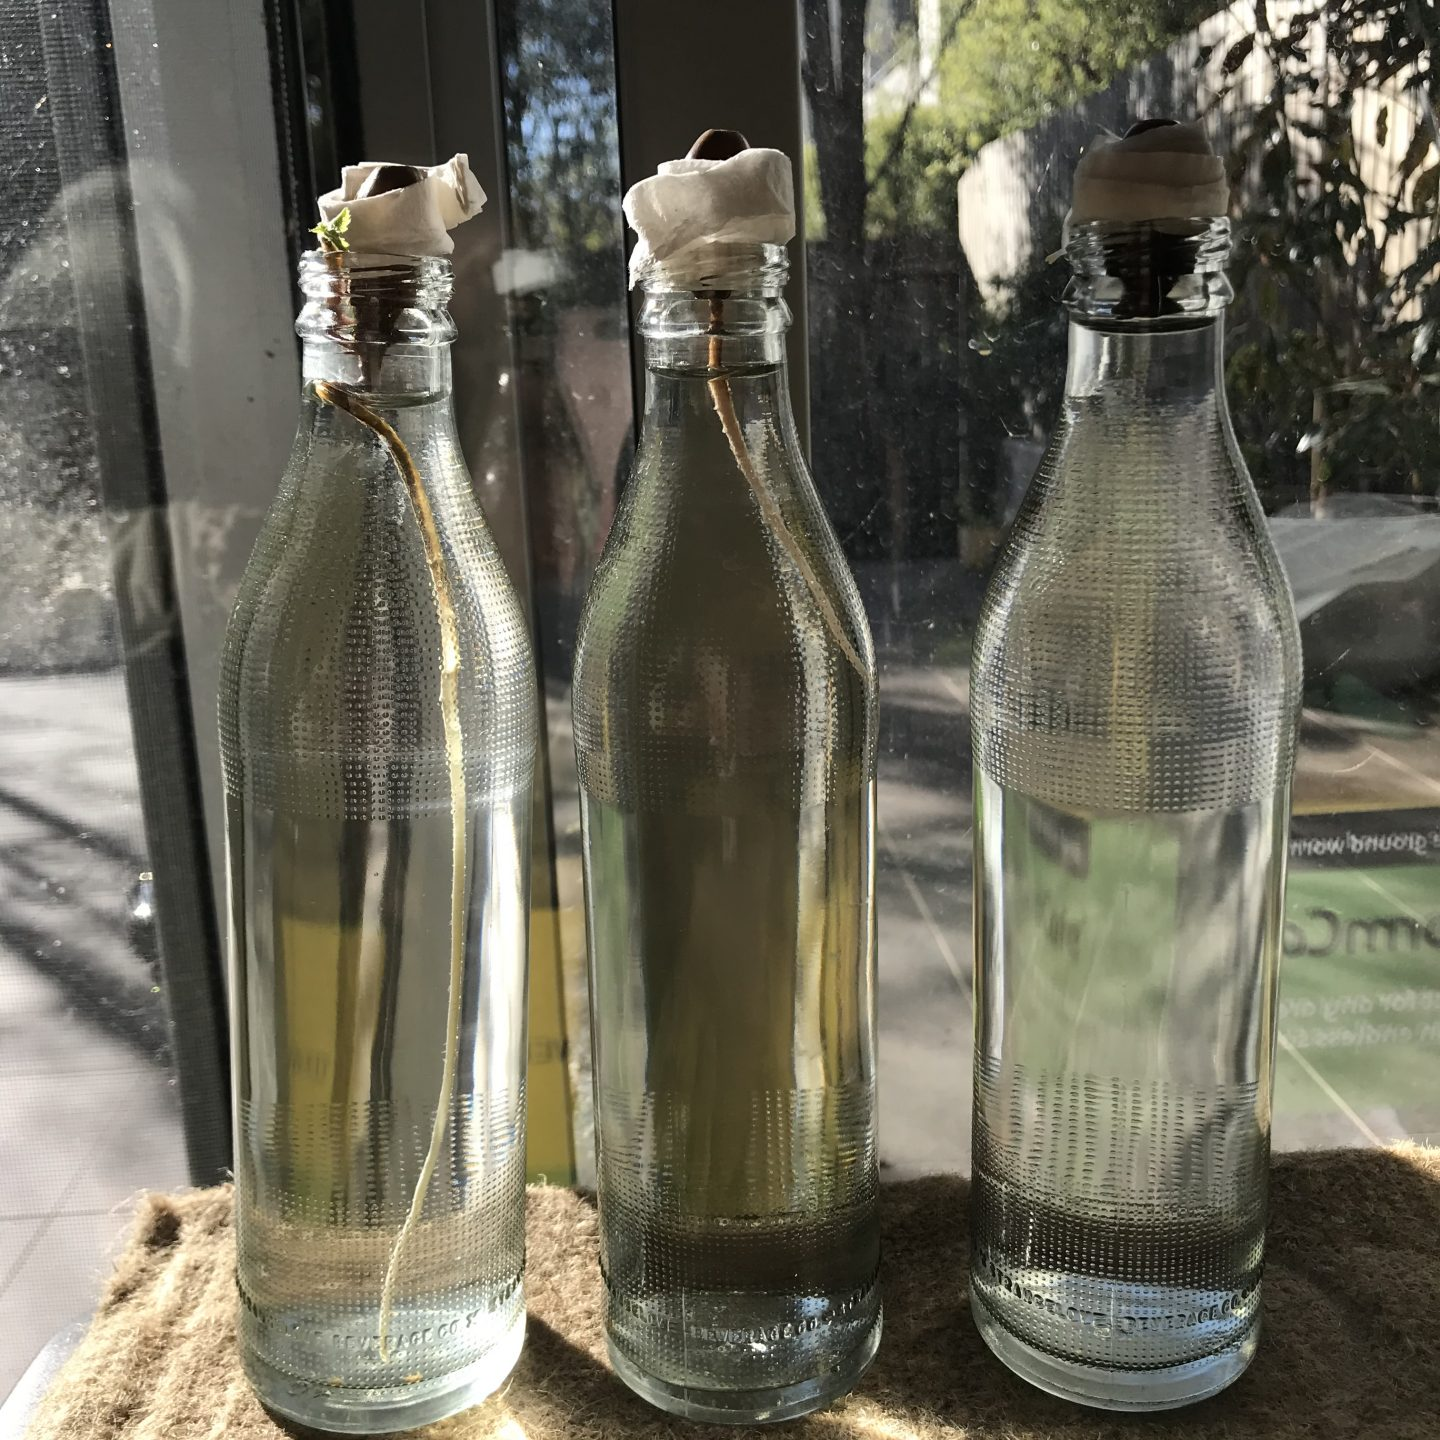 Three acorns wrapped in paper towel in a clear glass bottles, facing an outside courtyard in the sun